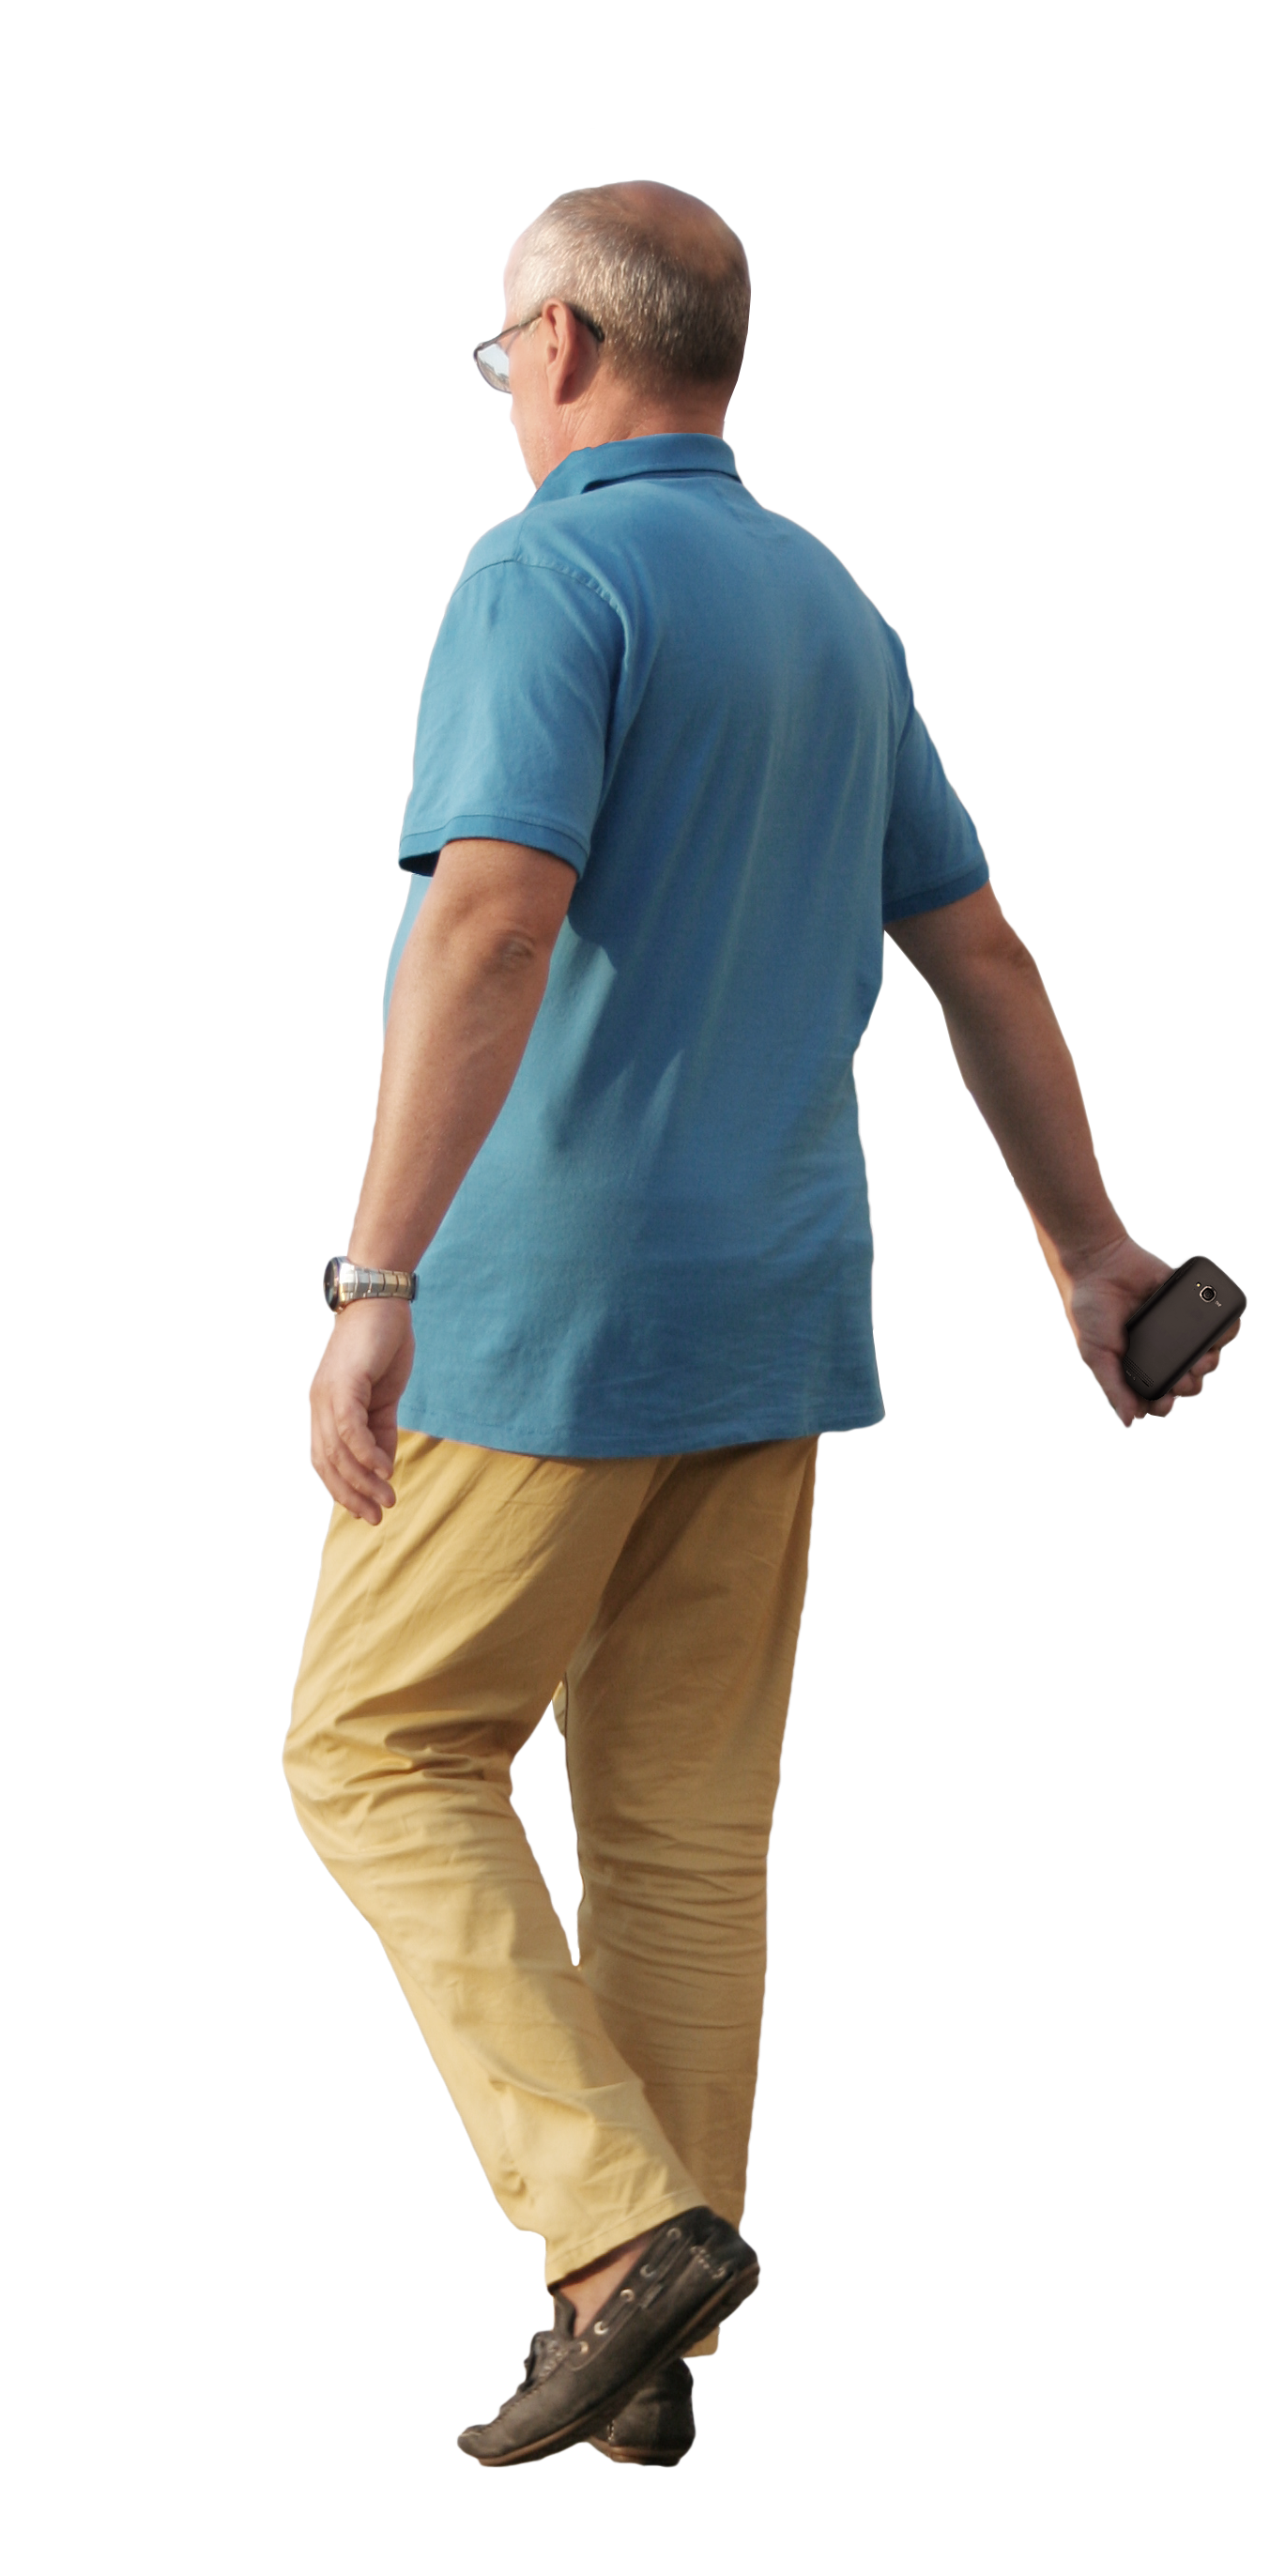 Old Man Standing PNG - 164795